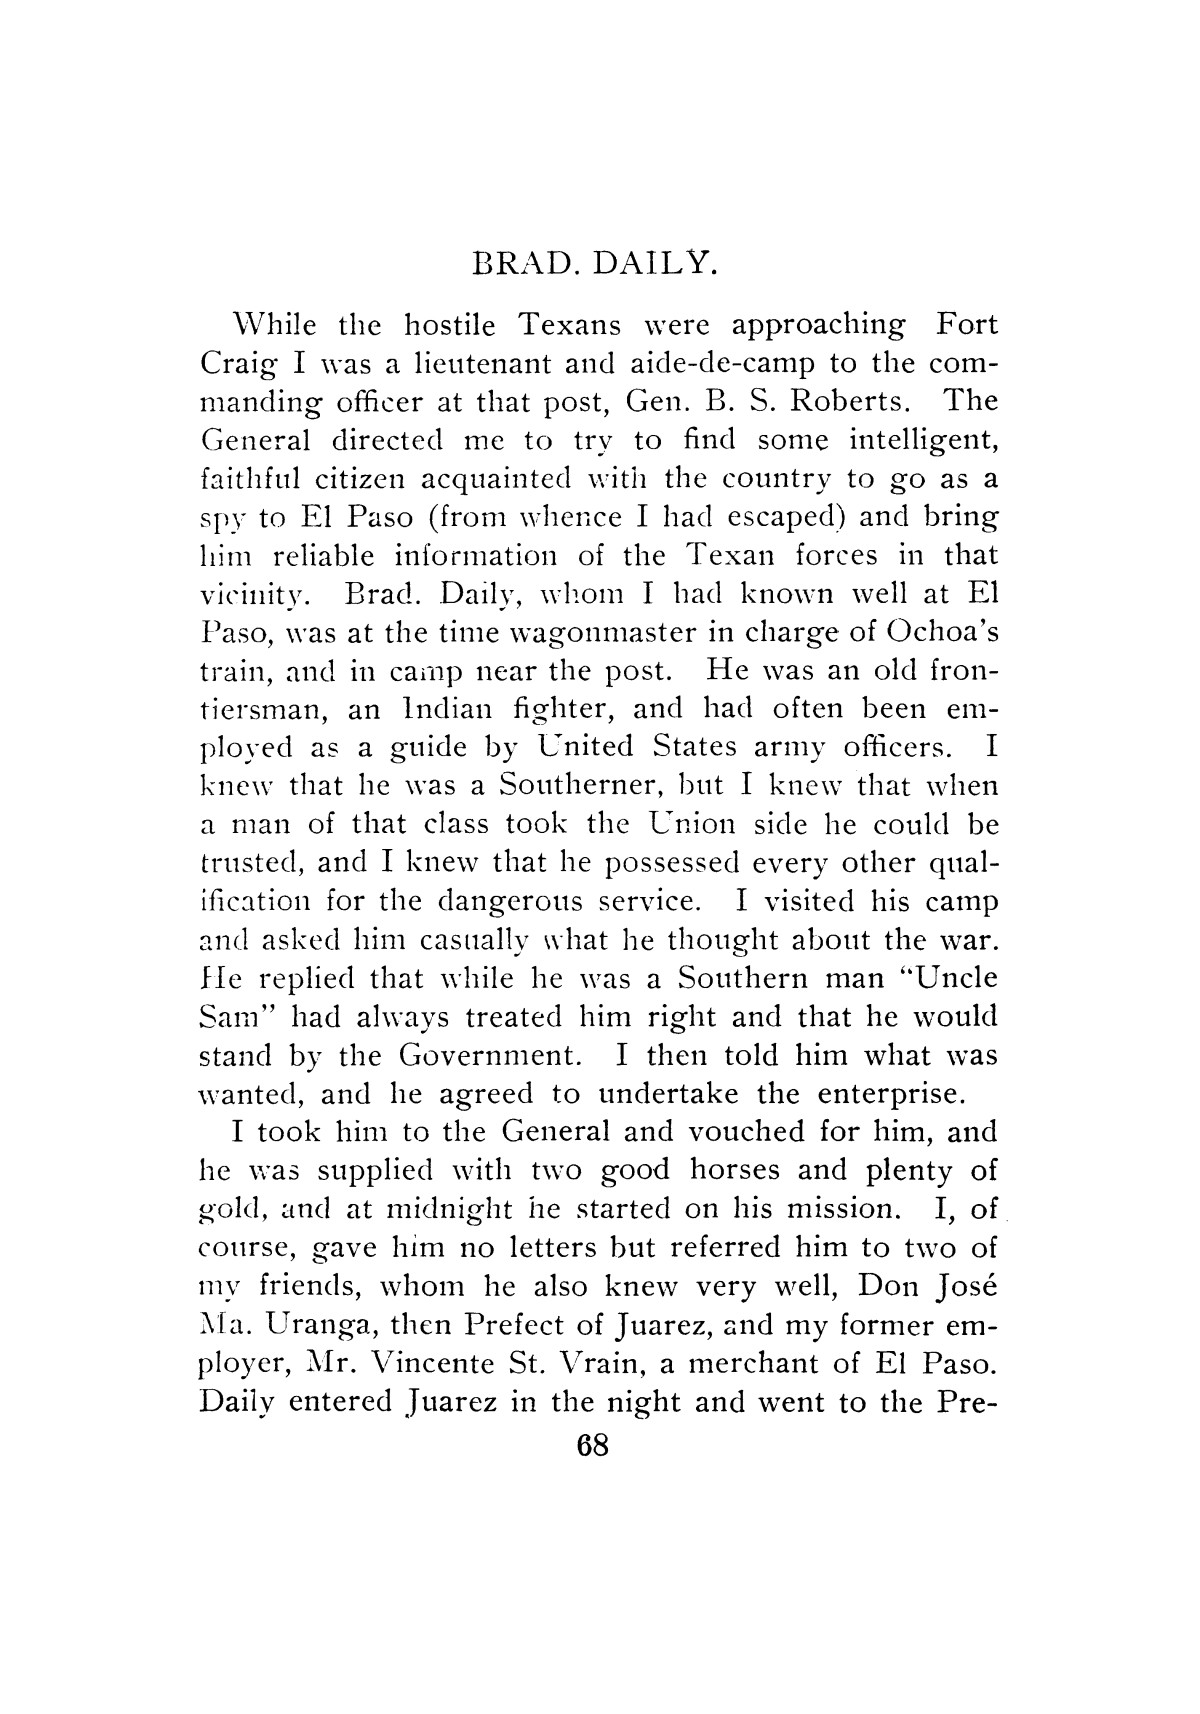 Forty years at El Paso, 1858-1898; recollections of war, politics, adventure, events, narratives, sketches, etc., by W. W. Mills.                                                                                                      [Sequence #]: 65 of 163